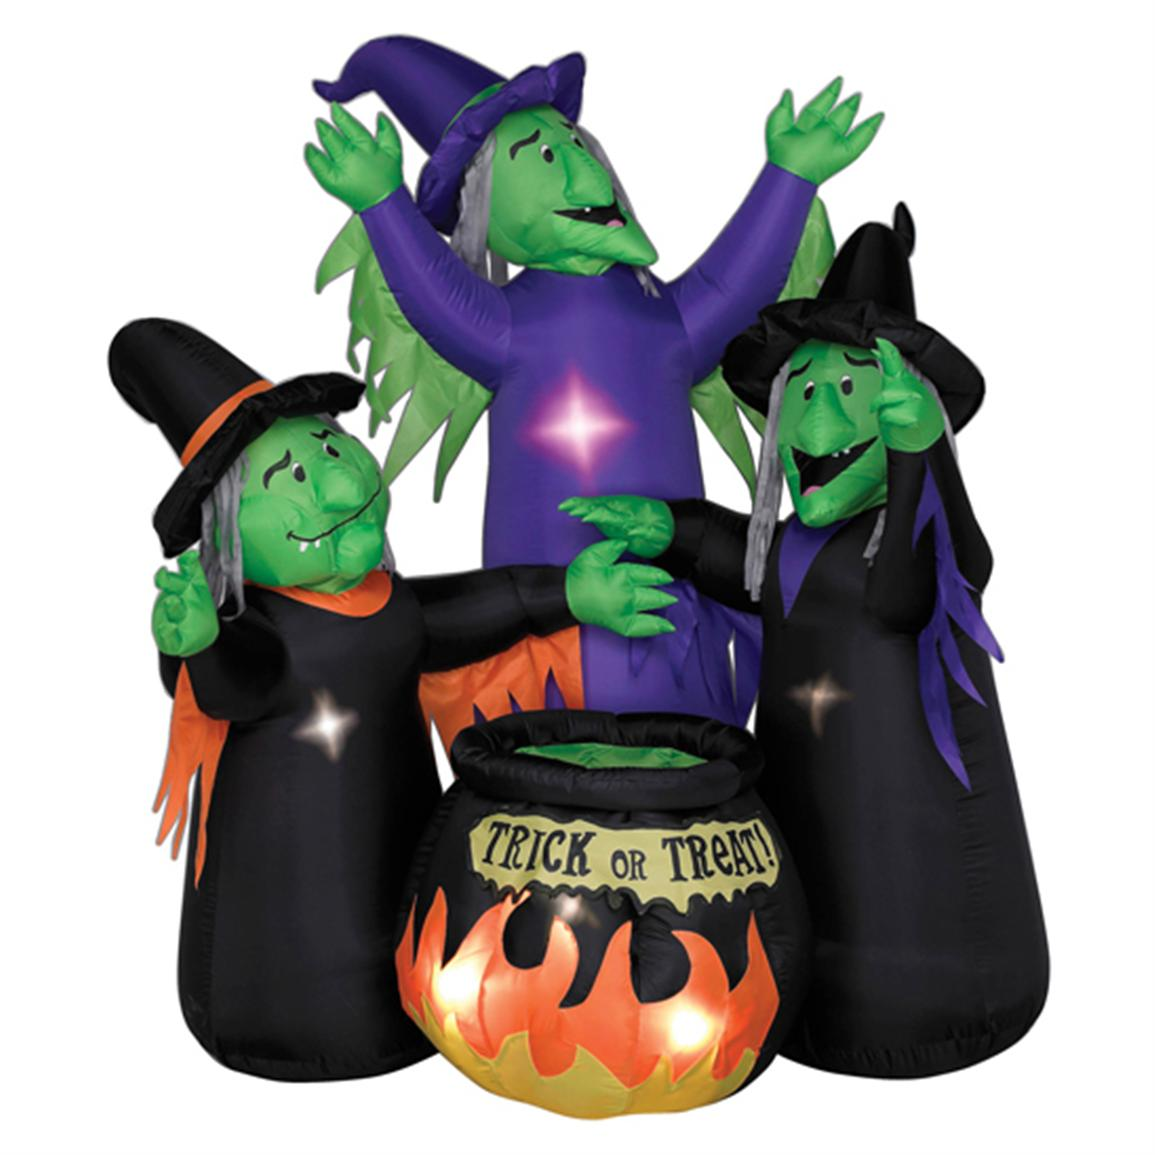 Animated Airblown 3 Witches with Cauldron